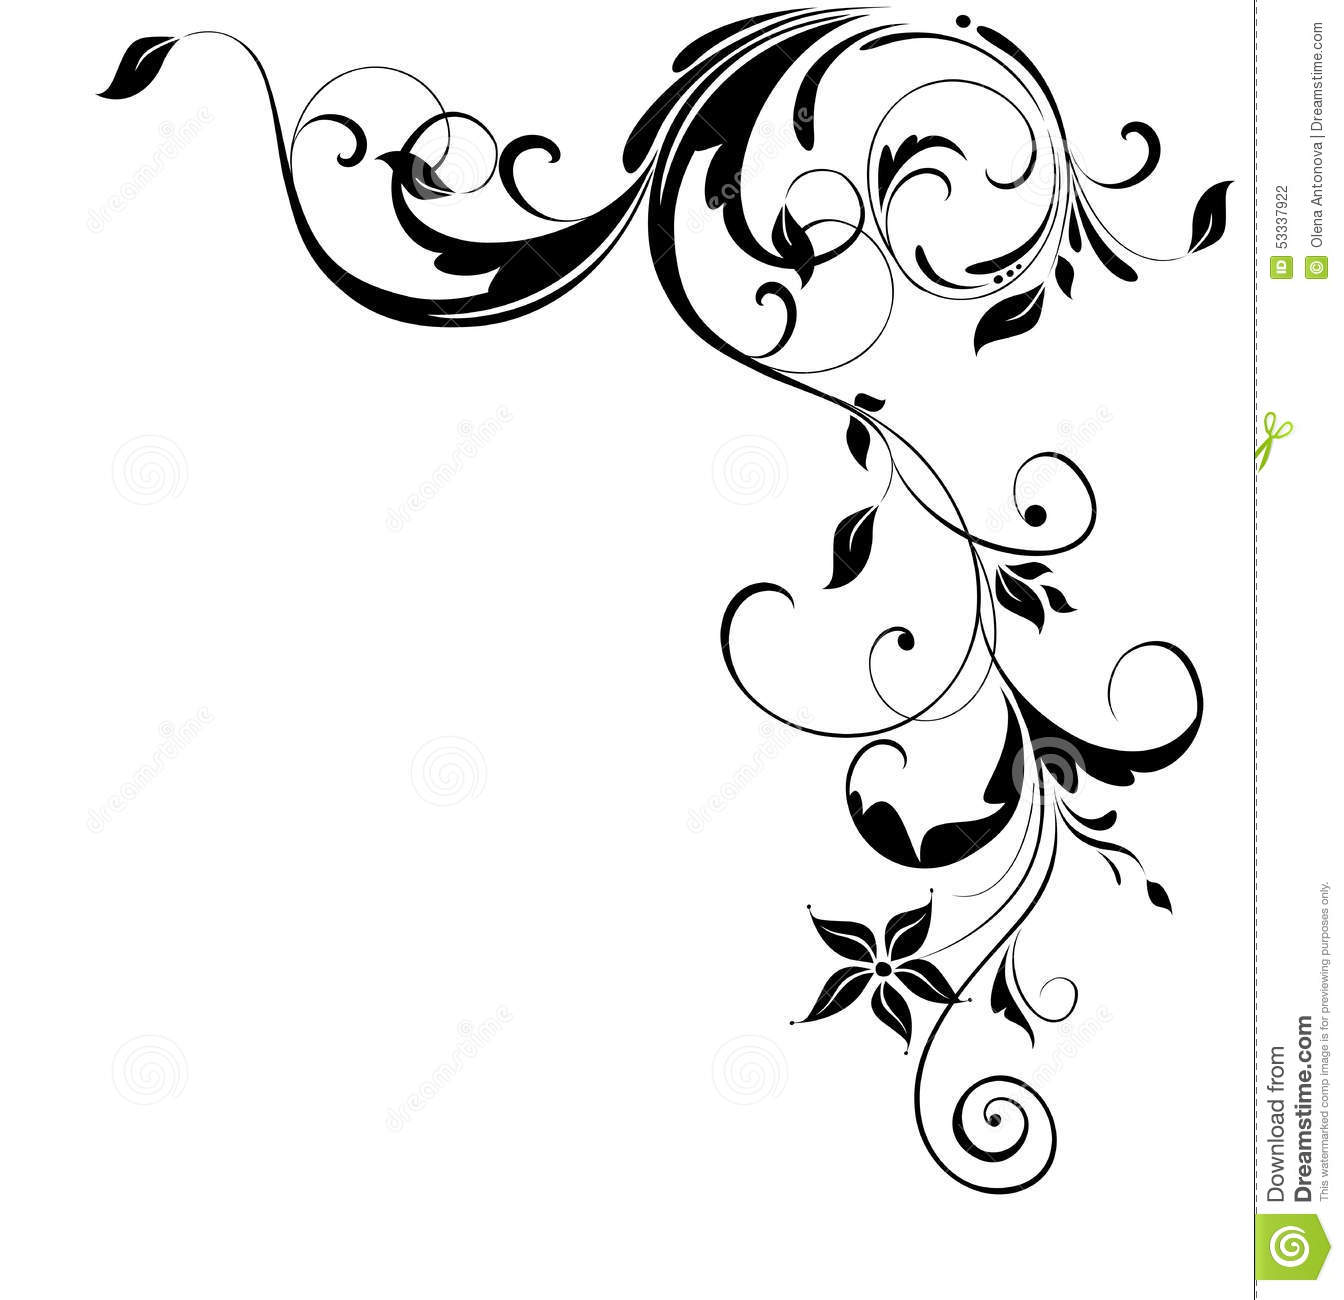 Stock Illustration Vintage Floral Corner Black White Image53337922 on Swirl Border Pattern